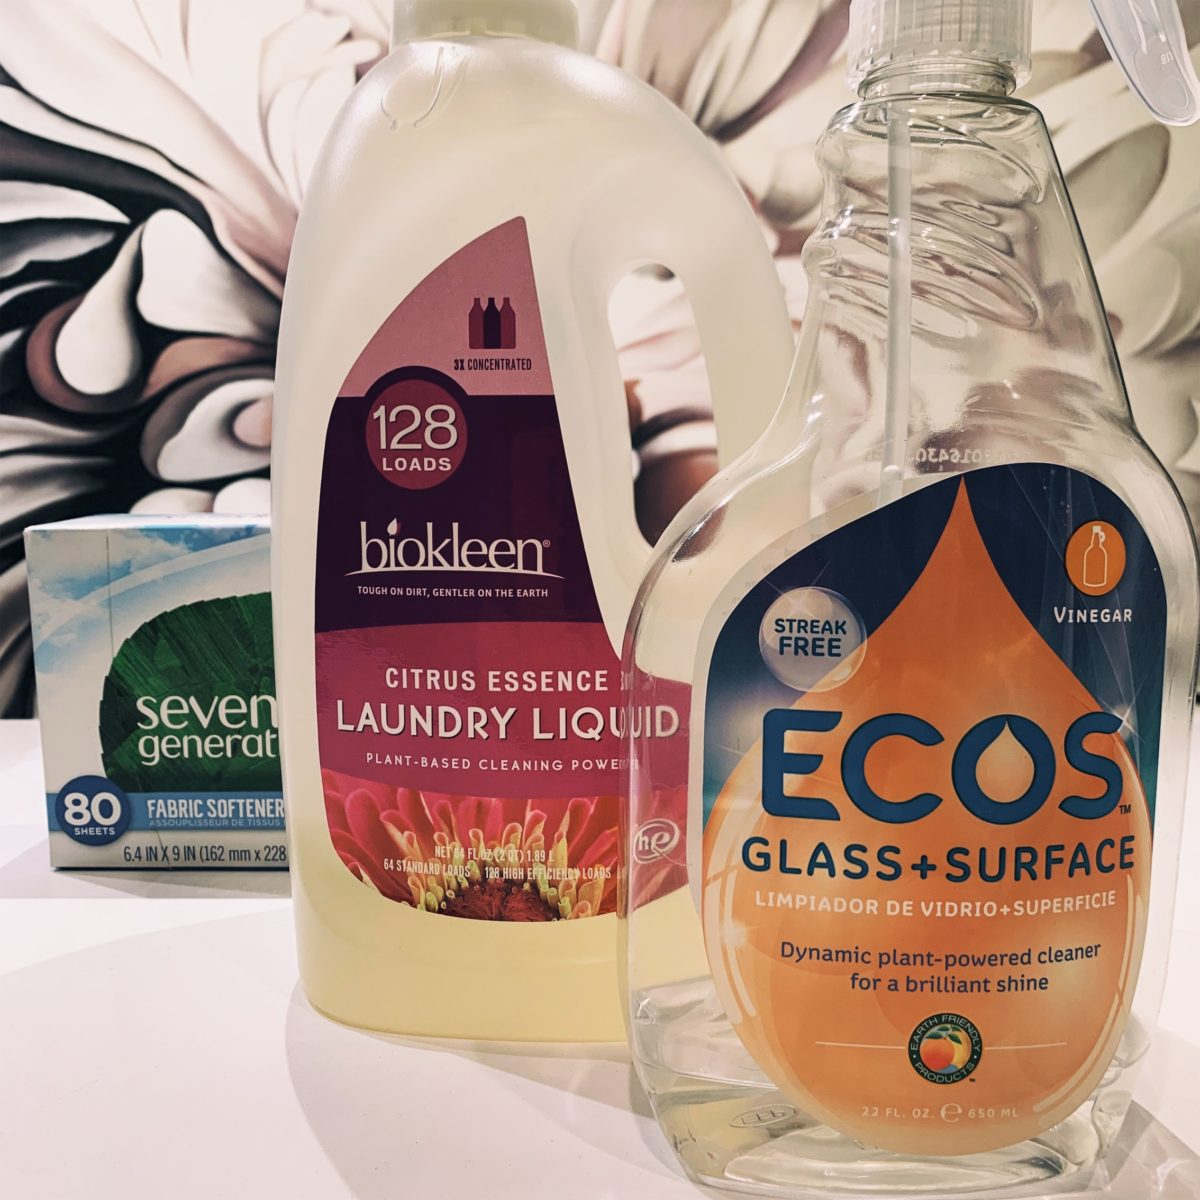 Earth and people friendly cleaning products